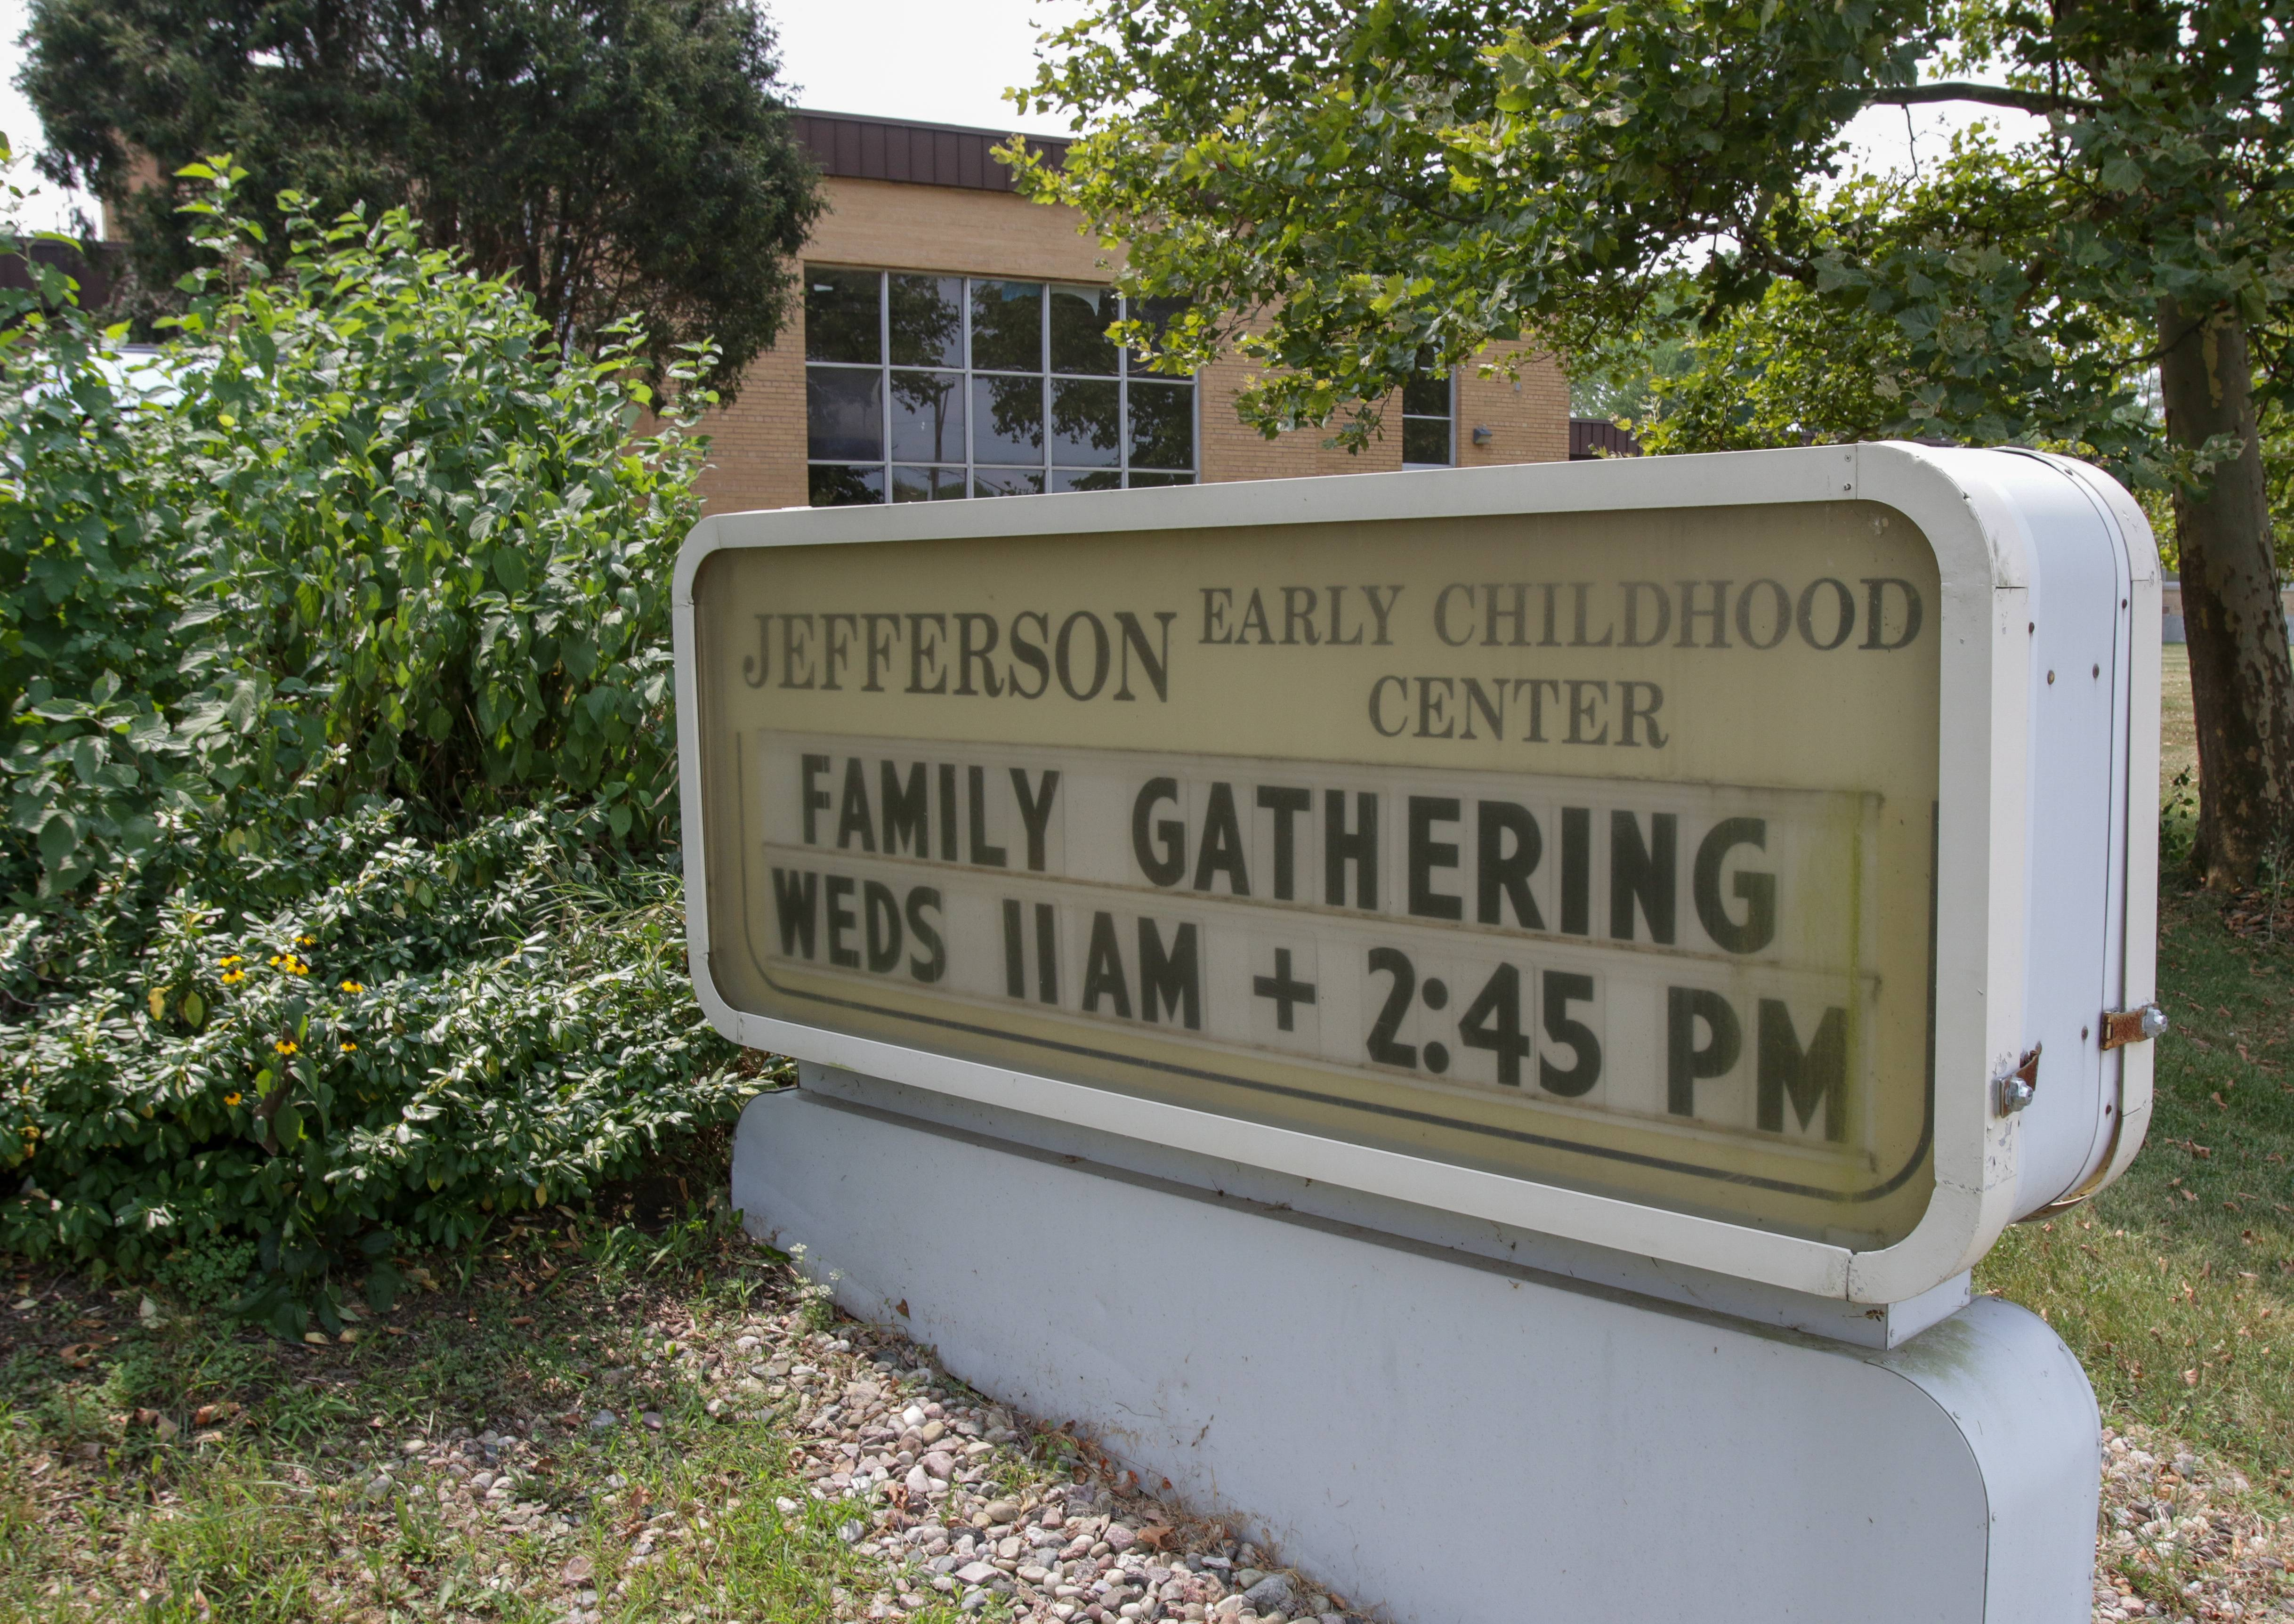 Wheaton Warrenville Unit District 200 officials were prepared to go ahead with the construction of a new Jefferson Early Childhood Center in Wheaton, but a lawsuit made them on Wednesday change their minds and likely put the matter again to voters.